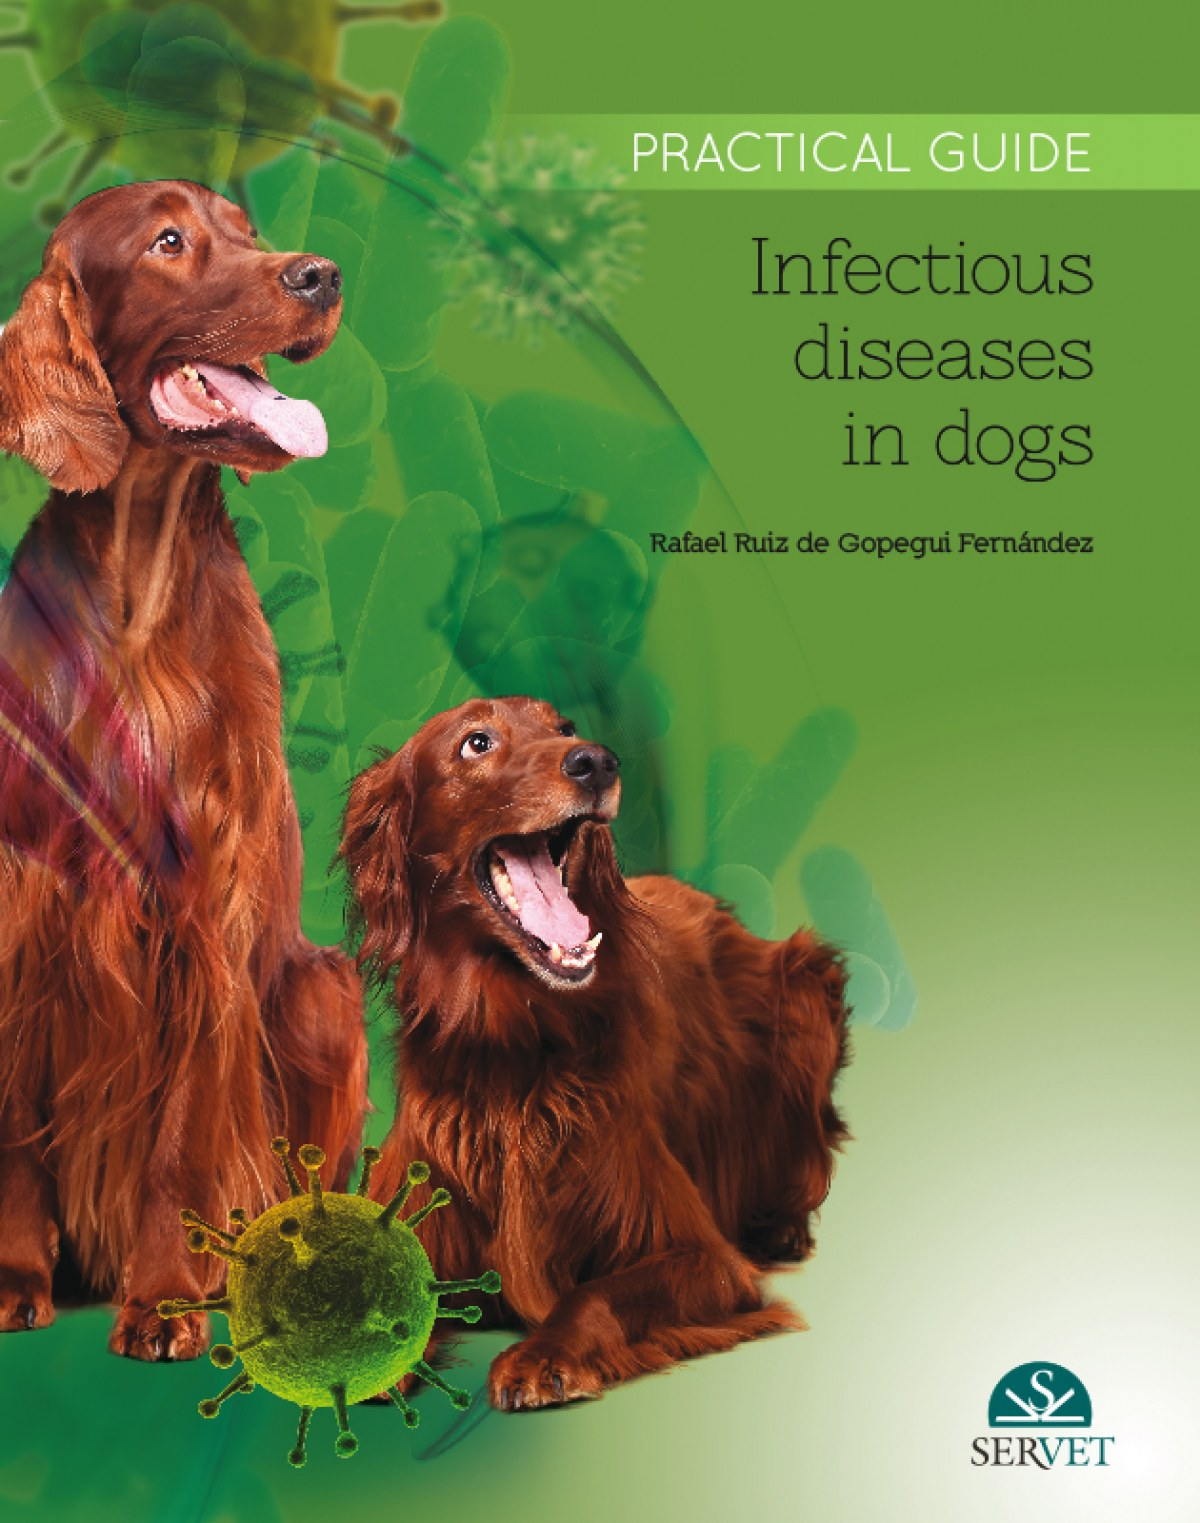 Infectious diseases in dogs